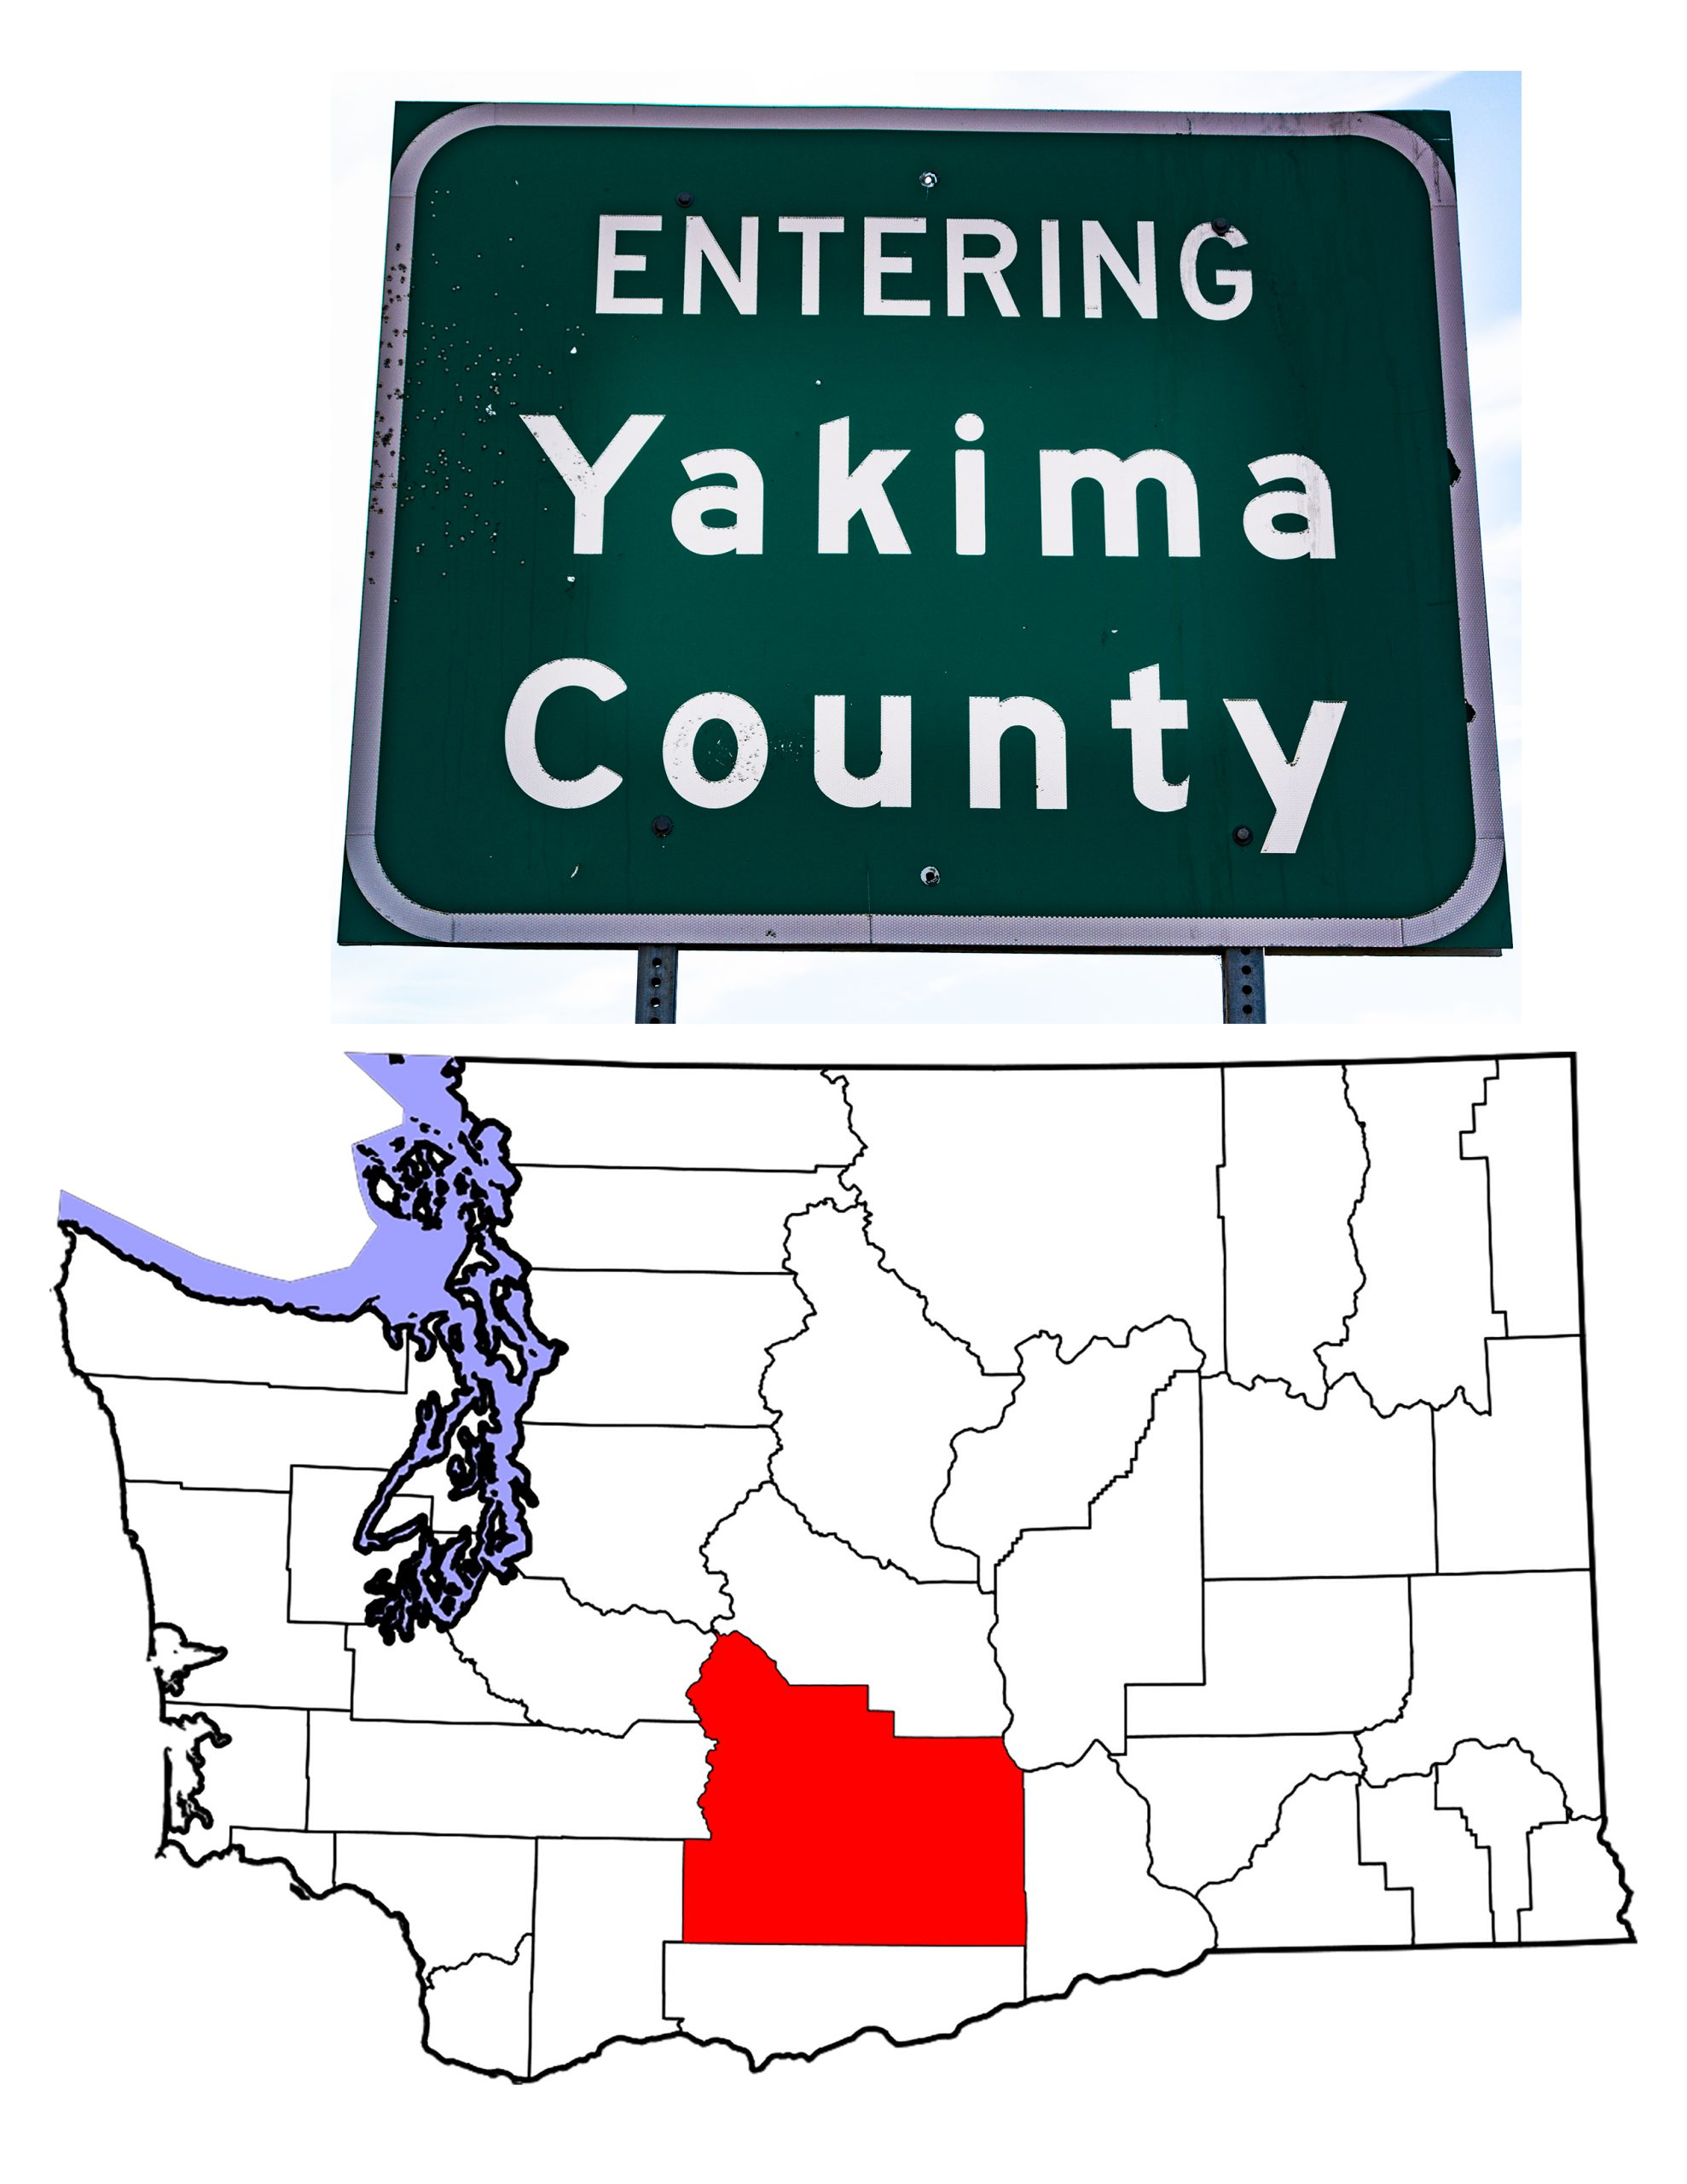 The Yakima County highway sign and a map of Washington showing Yakima County in red.